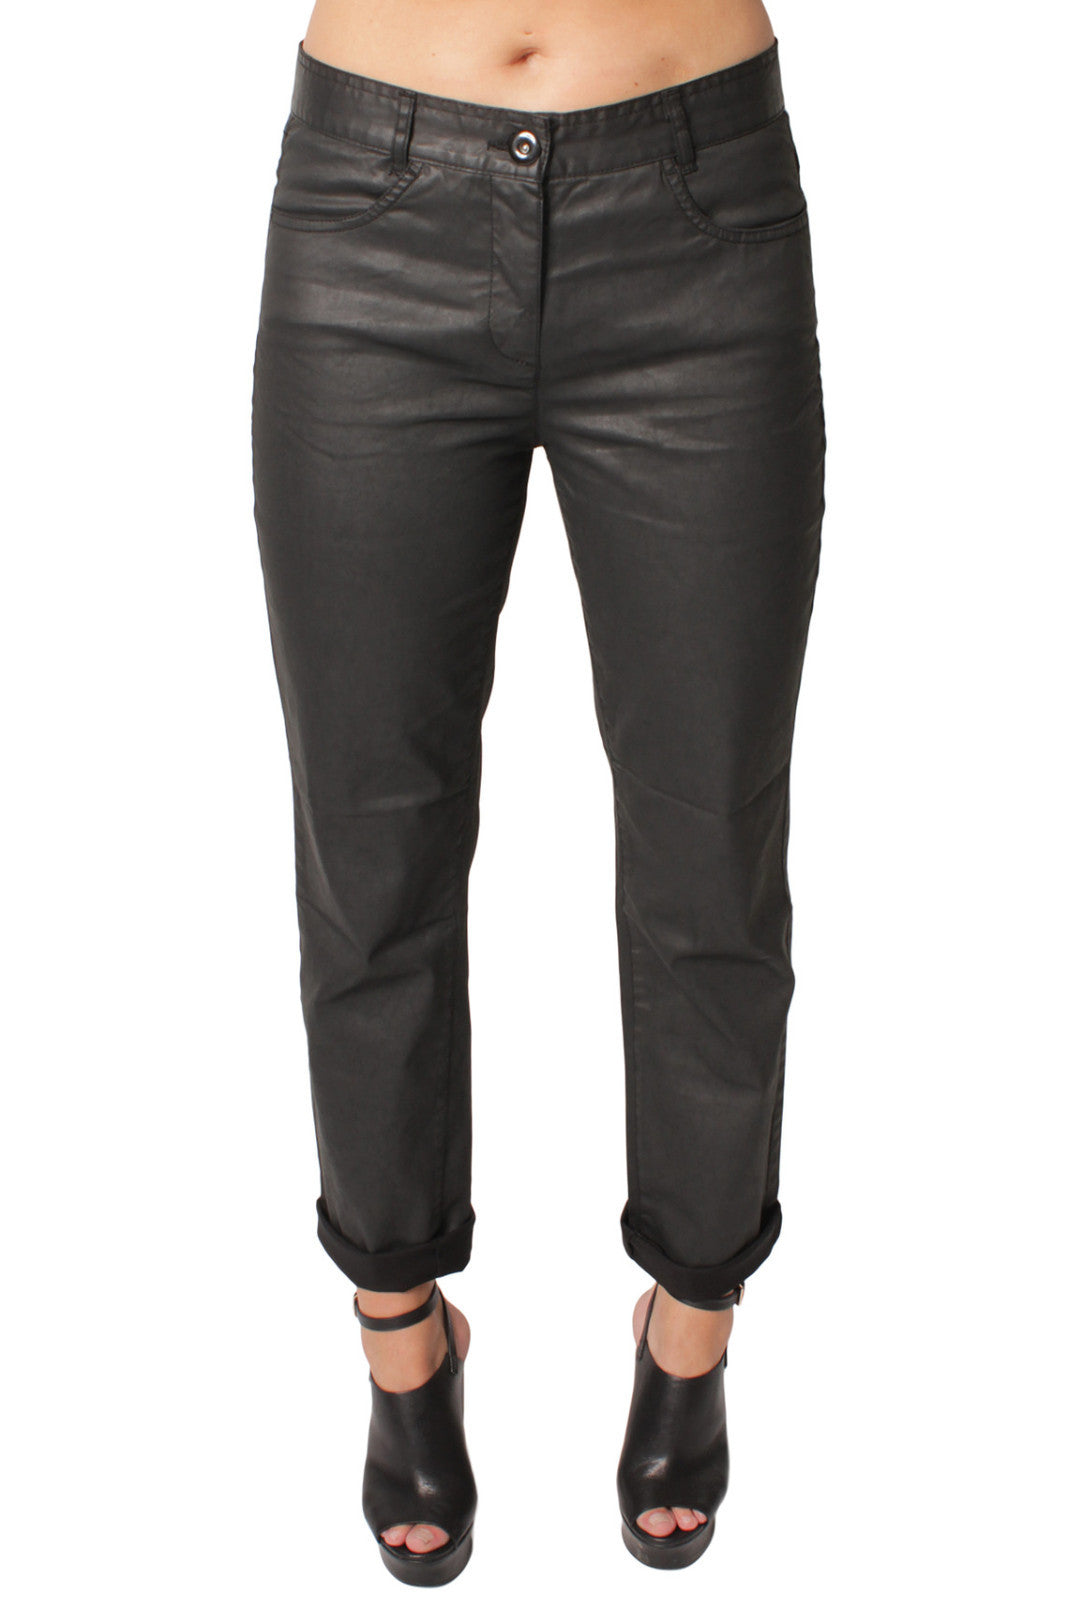 Black Leather Look Jeans